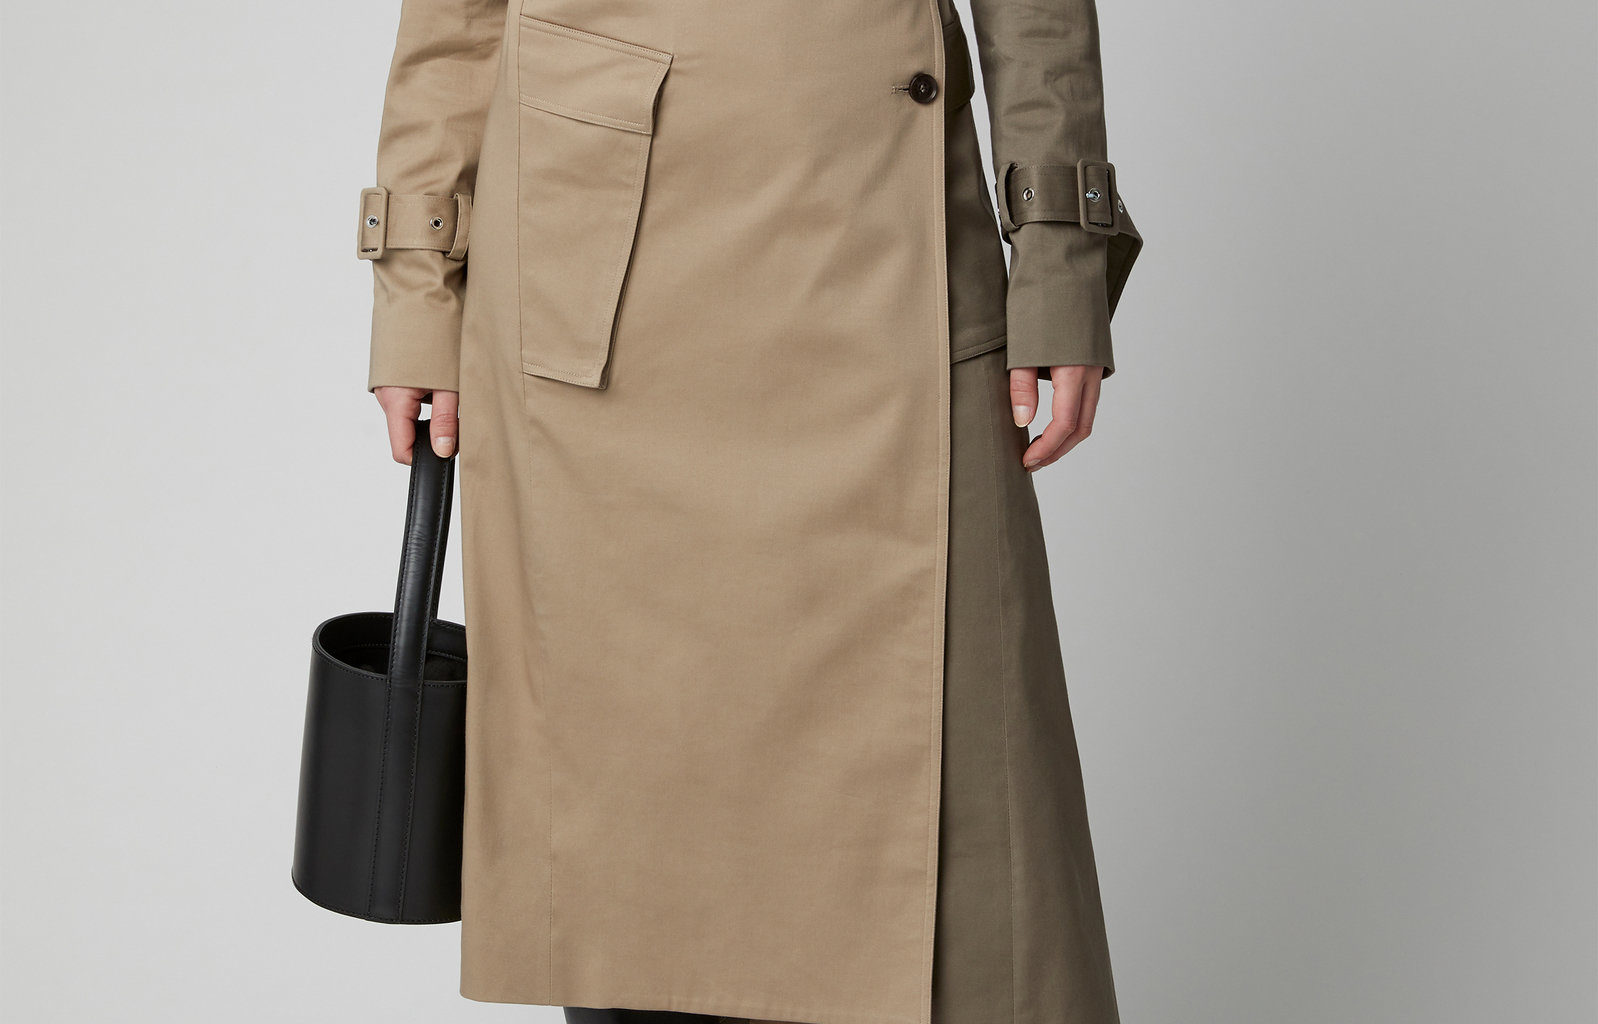 How to Shop a Trench Coat for Tall Women